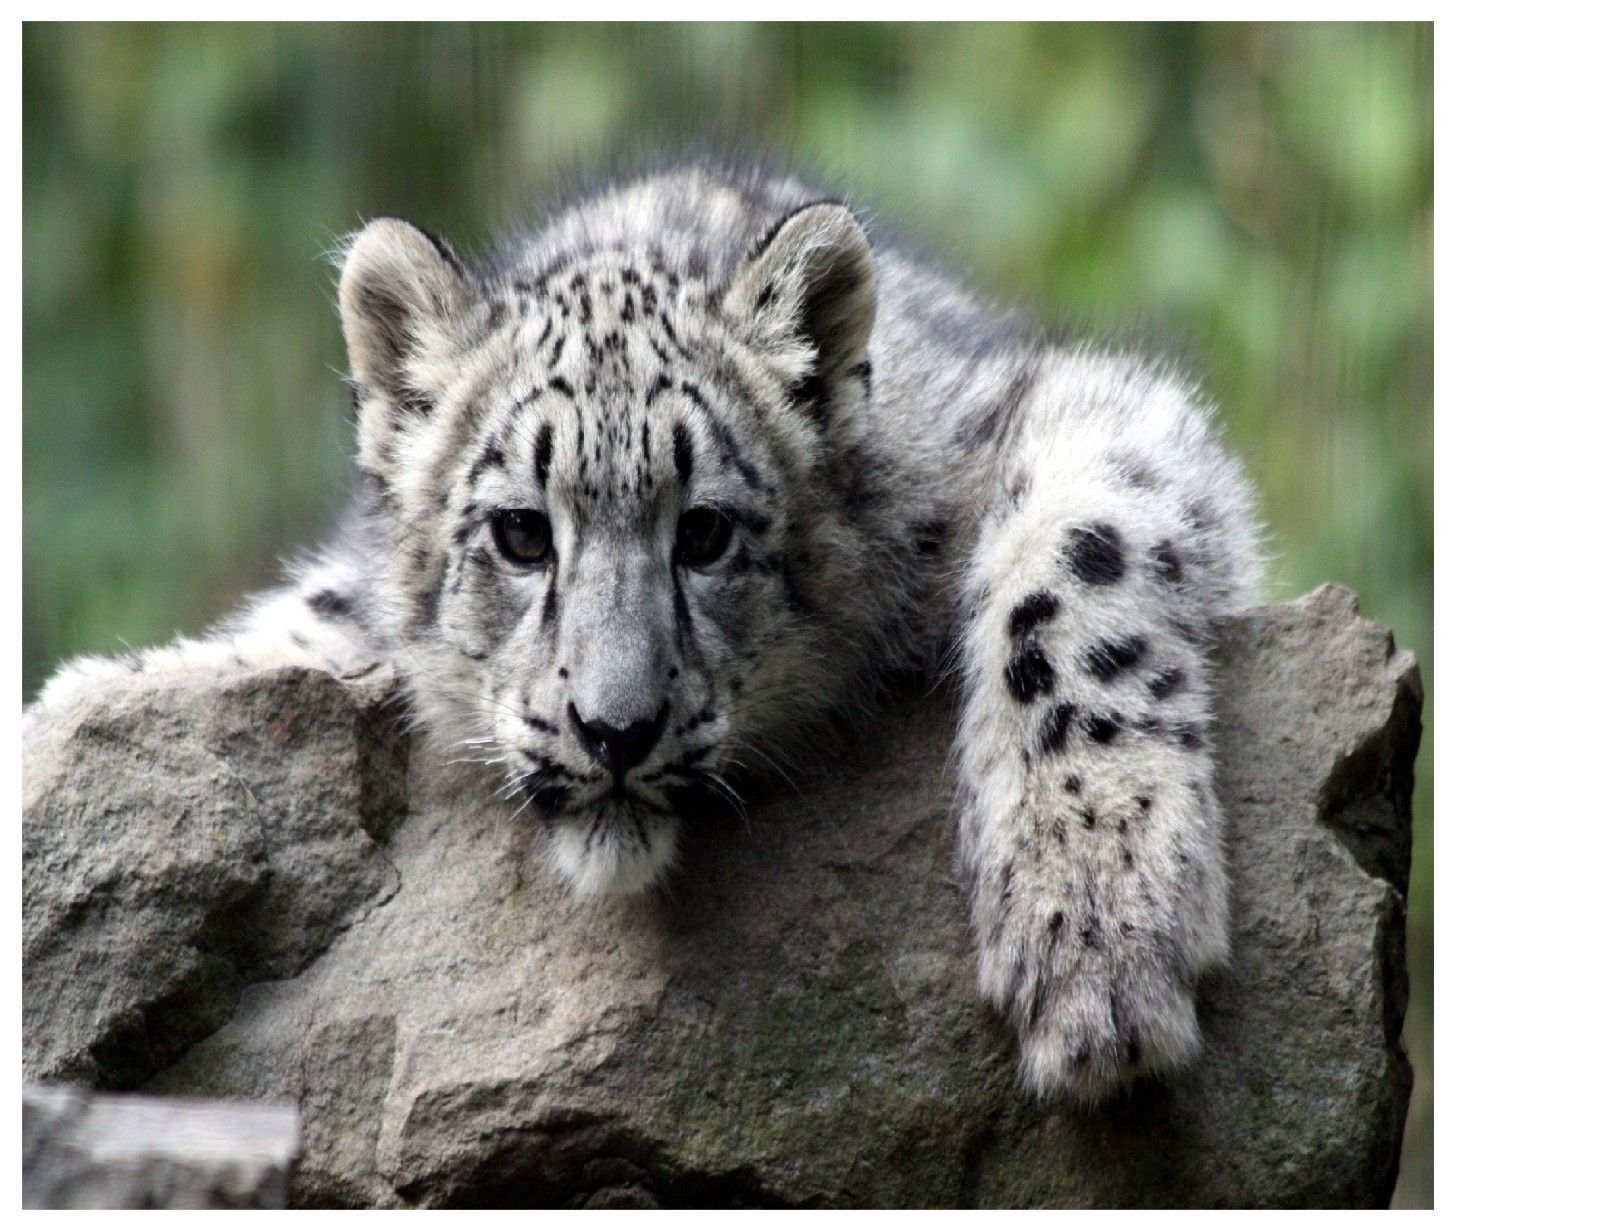 949 Baby Snow Leopard Cub Image Computer Mouse Pad 9 X 7 Or Hot